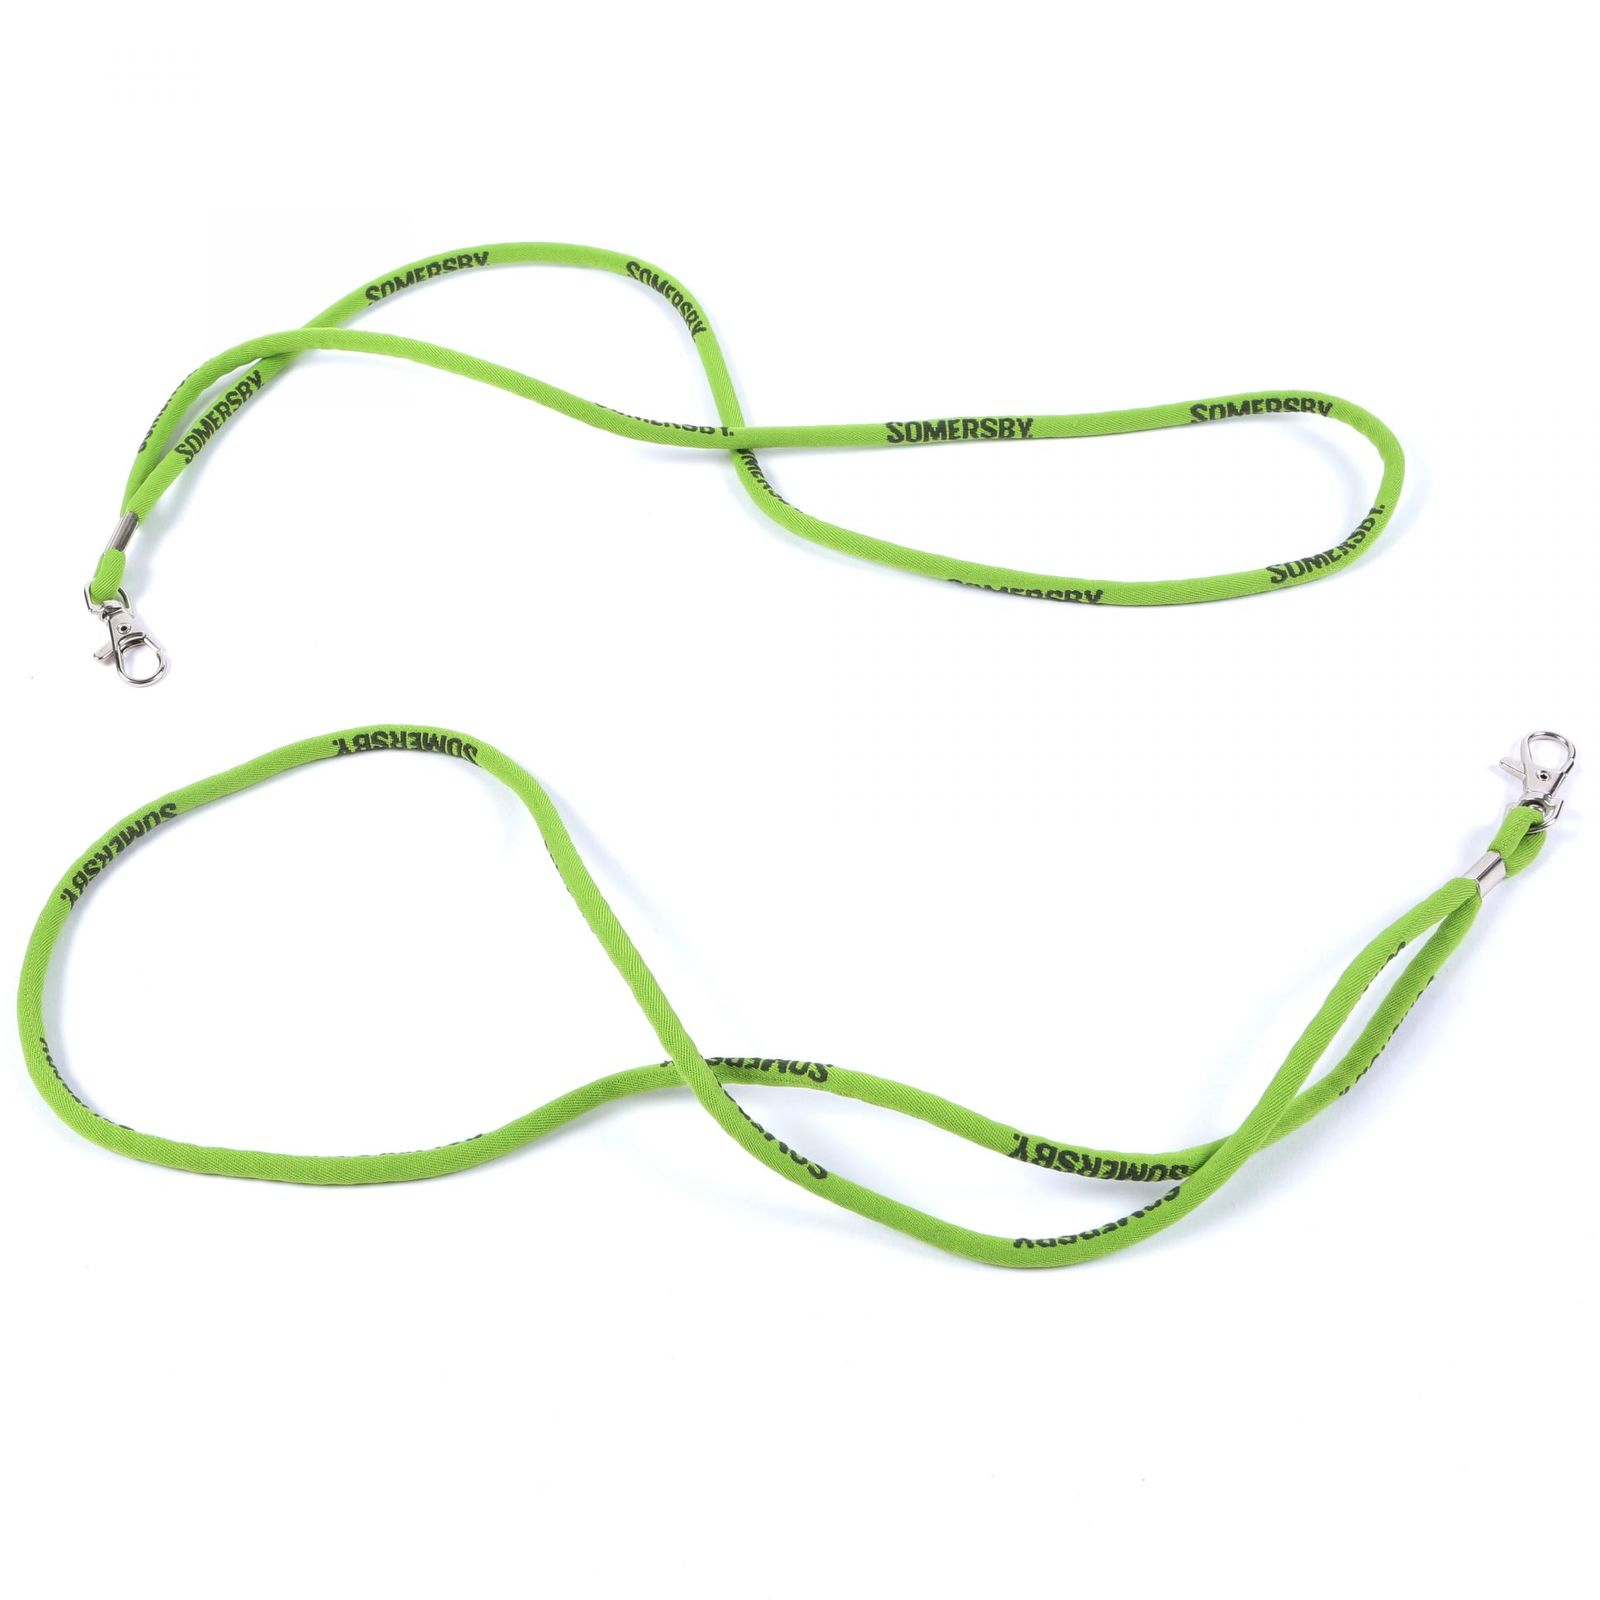 Buy Printed Cord Lanyards on Lanyards Direct Today!